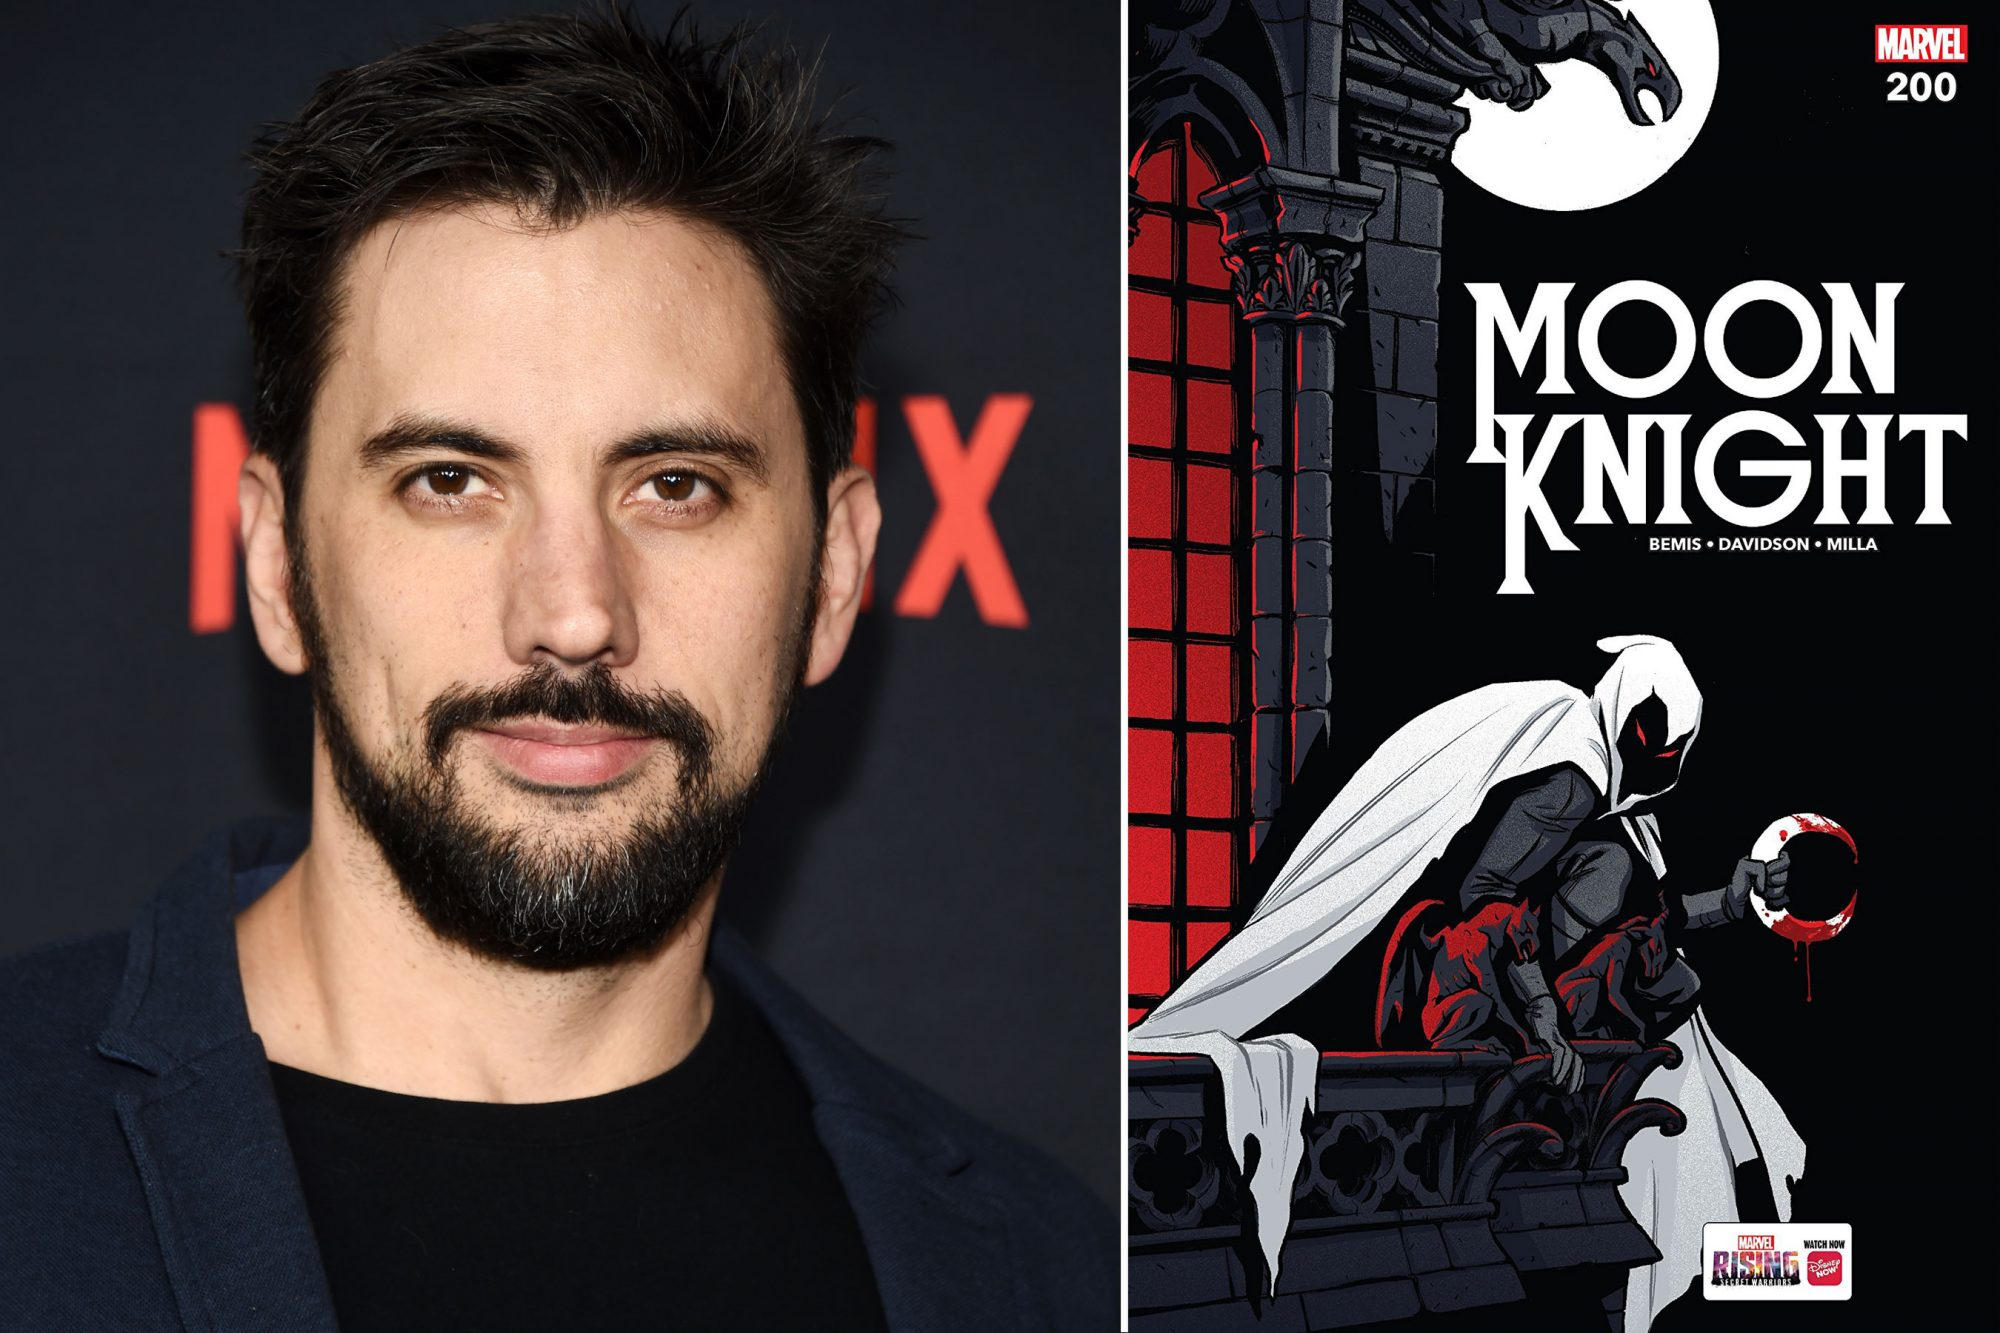 Disney+ and Marvel's Moon Knight series boss teases 'one hell of a ride' | EW.com